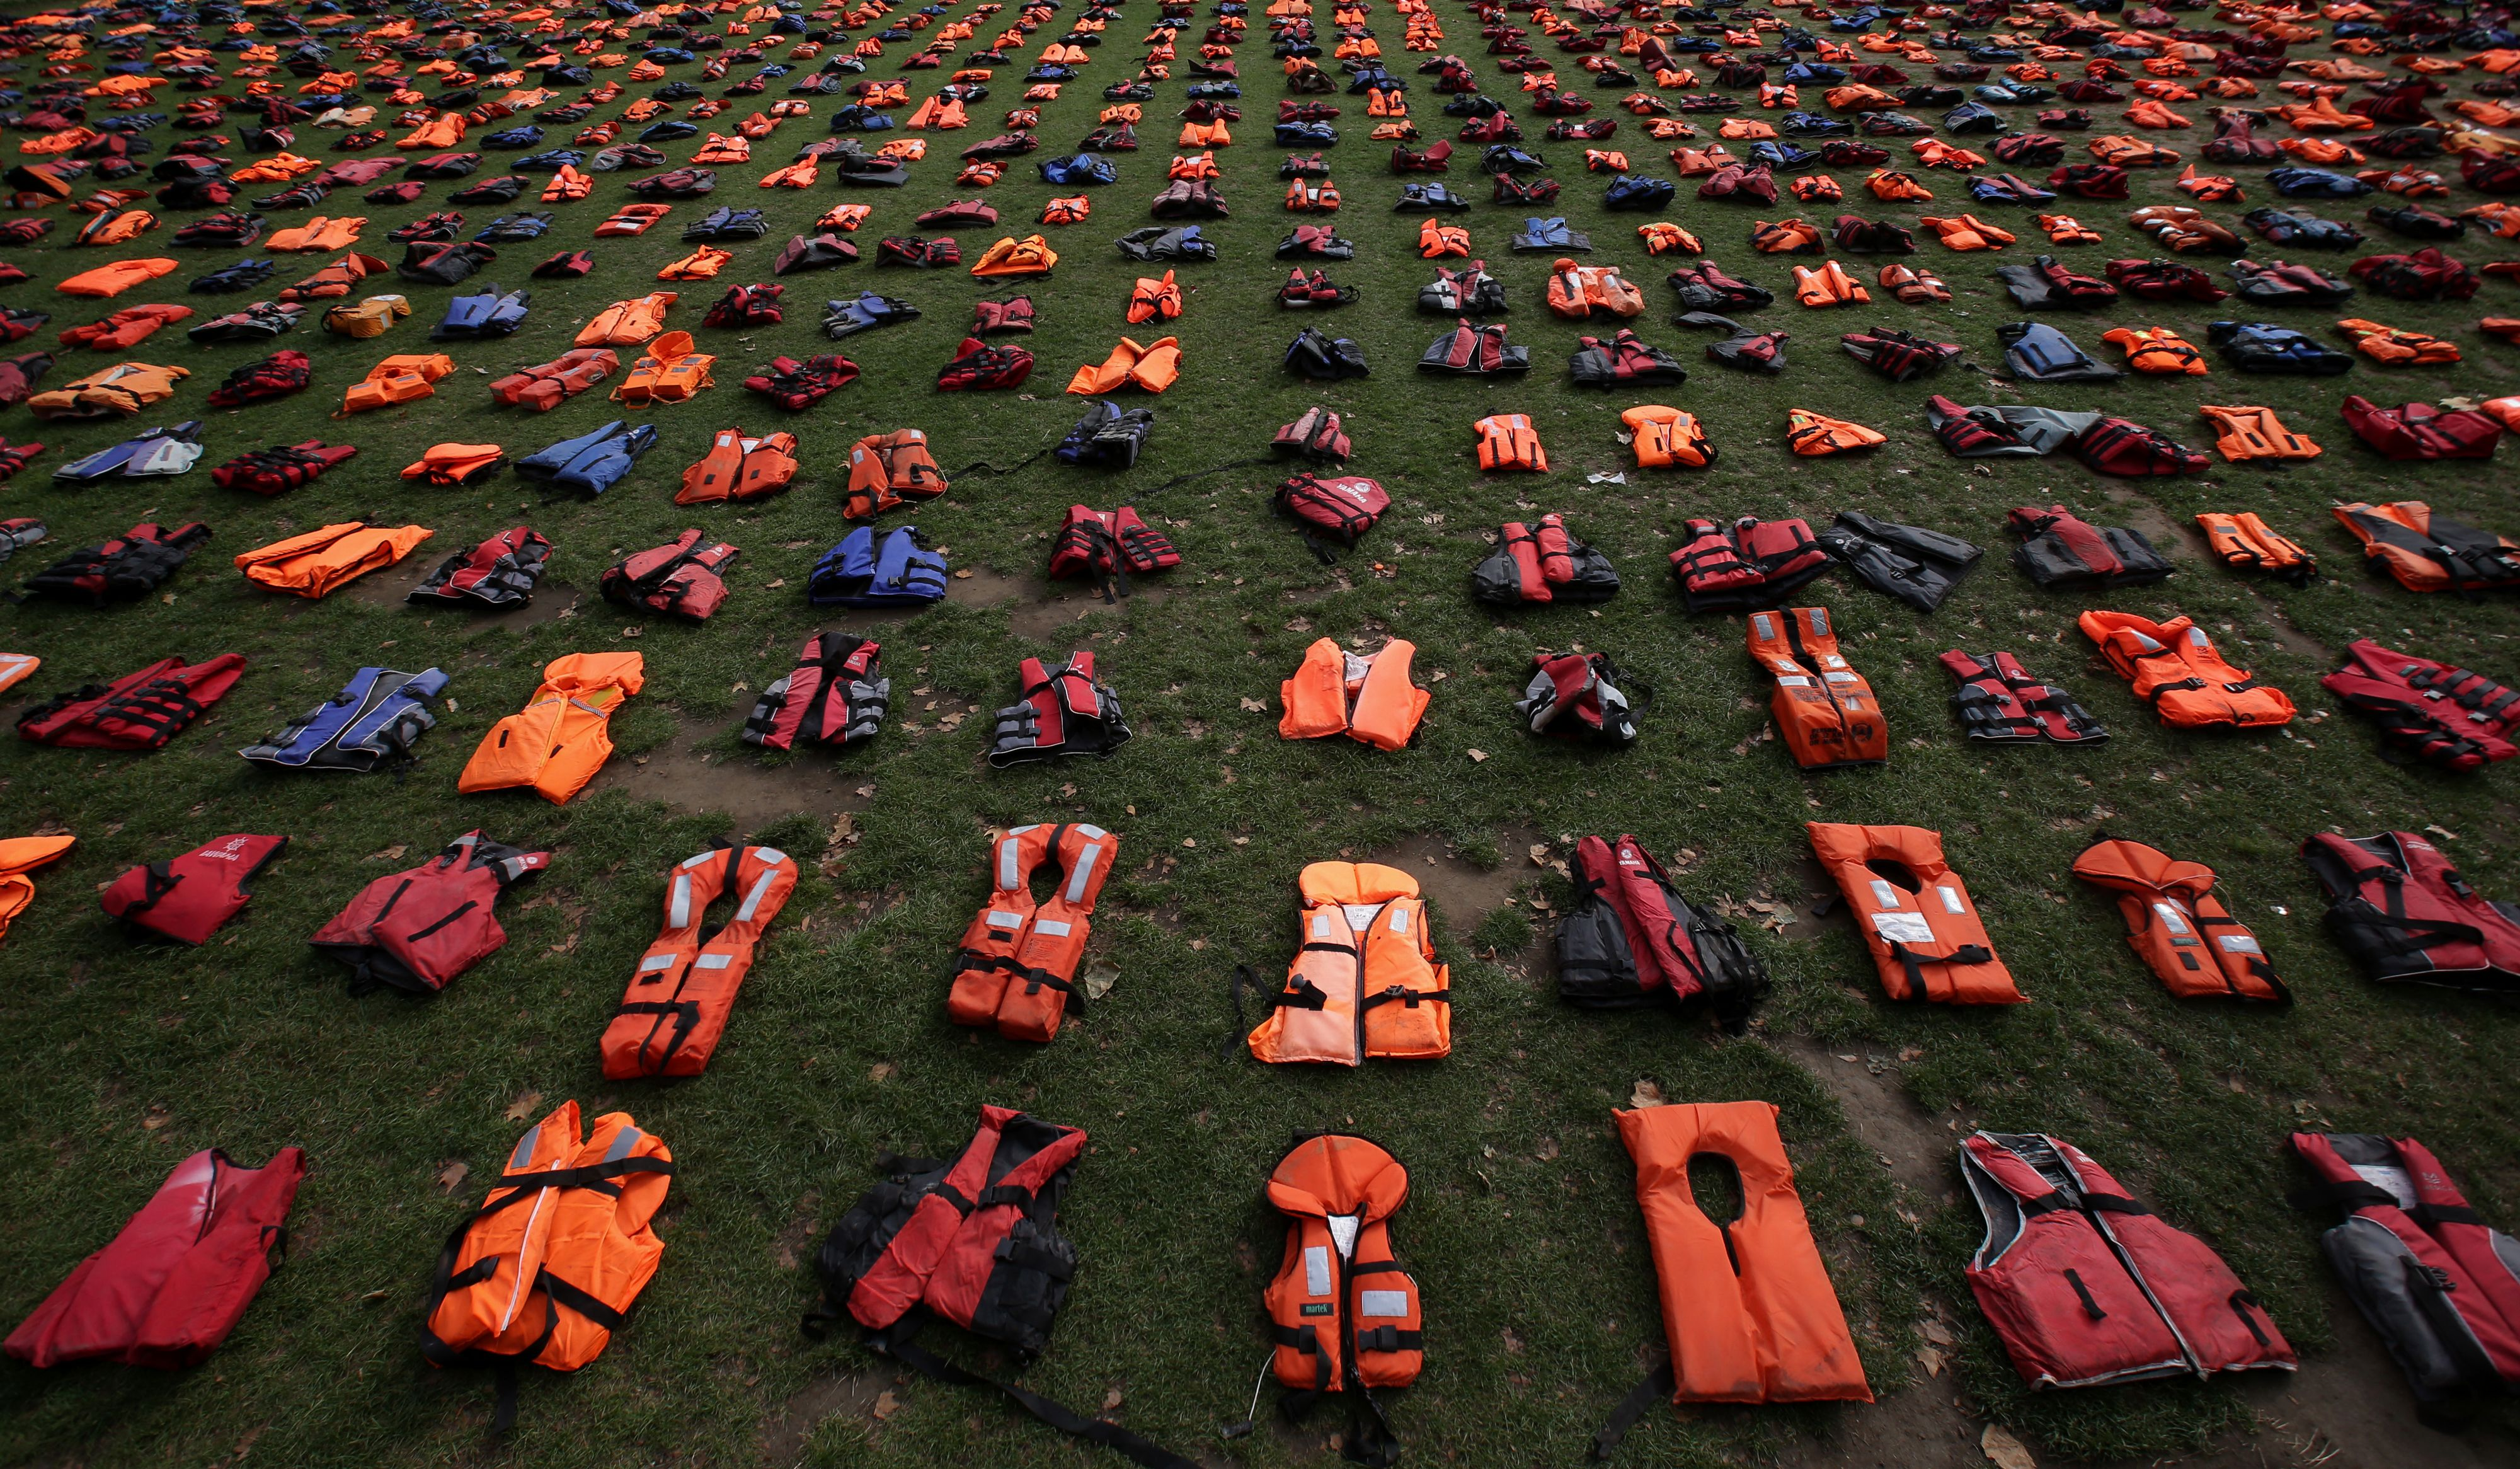 2,500 lifejackets, worn by refugees during crossings from Turkey to the Greek island of Chios, are displayed on Parliament Square, opposite the Houses of Parliament, in central London, on September 19, 2016, during a photcall to highlight the number of refugees that have died trying to reach Europe since 2015.